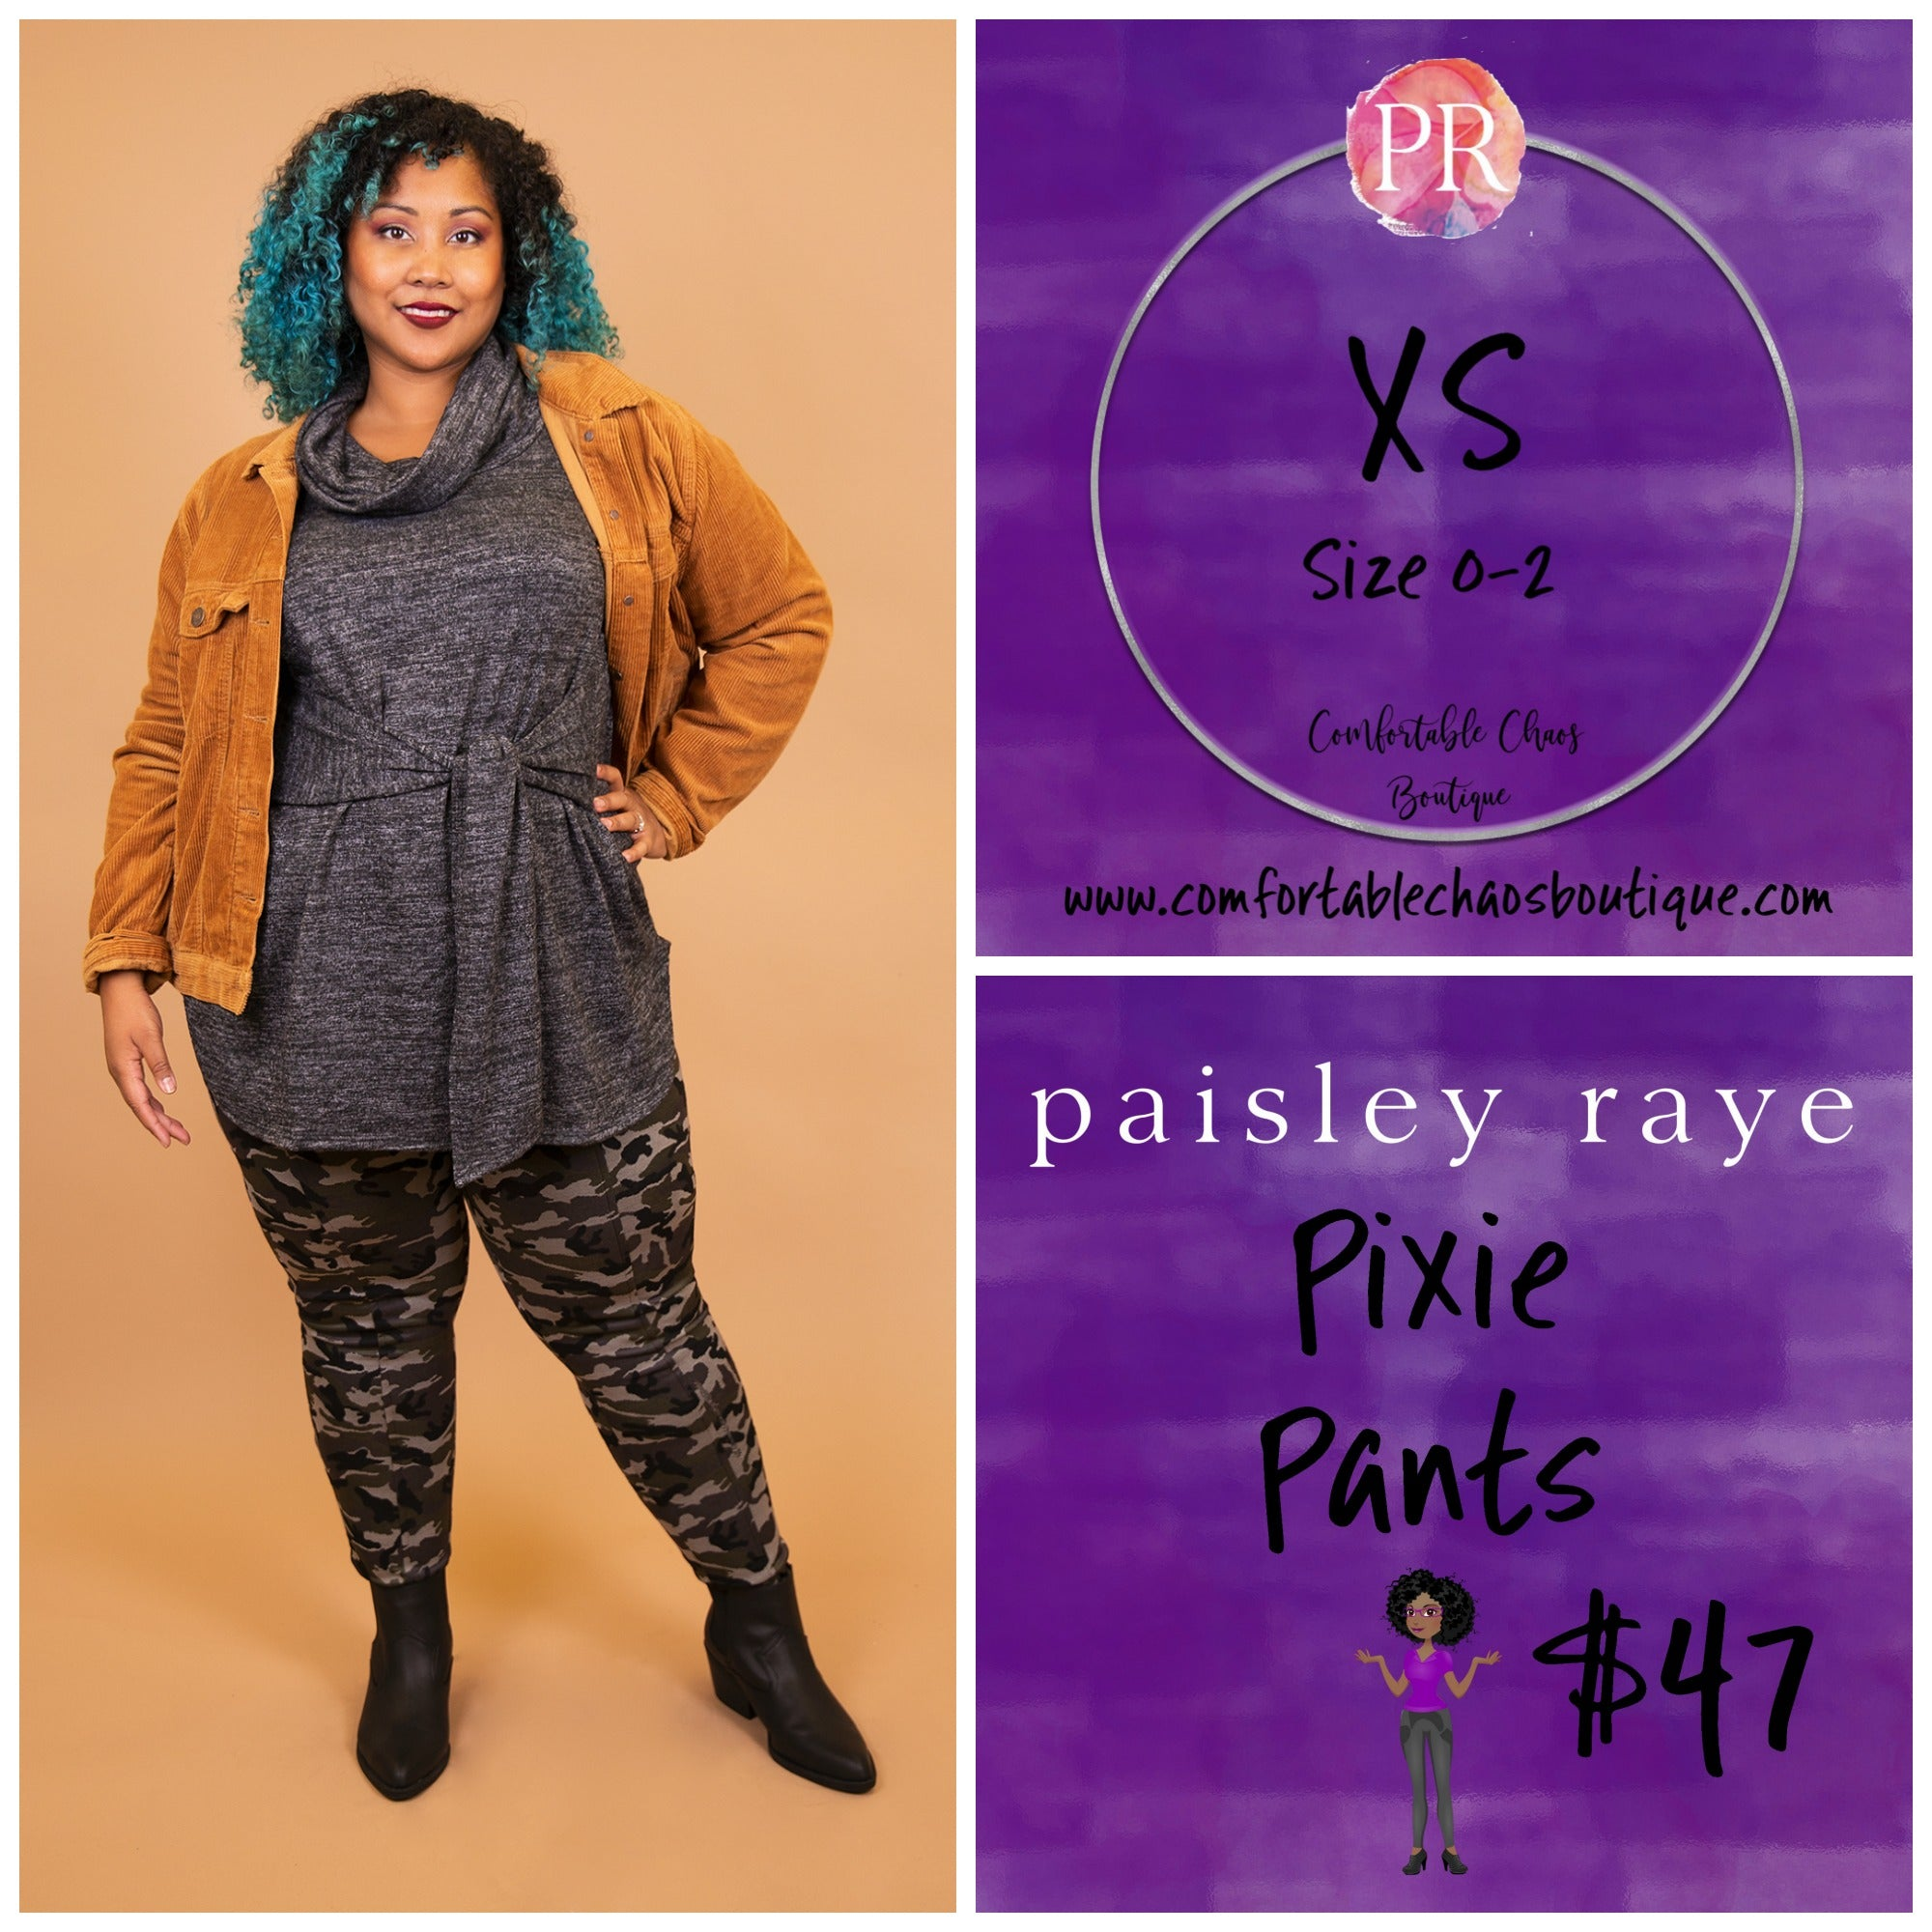 comfortable-chaos-boutique - Pixie Pant - Camo (XS) - Pants